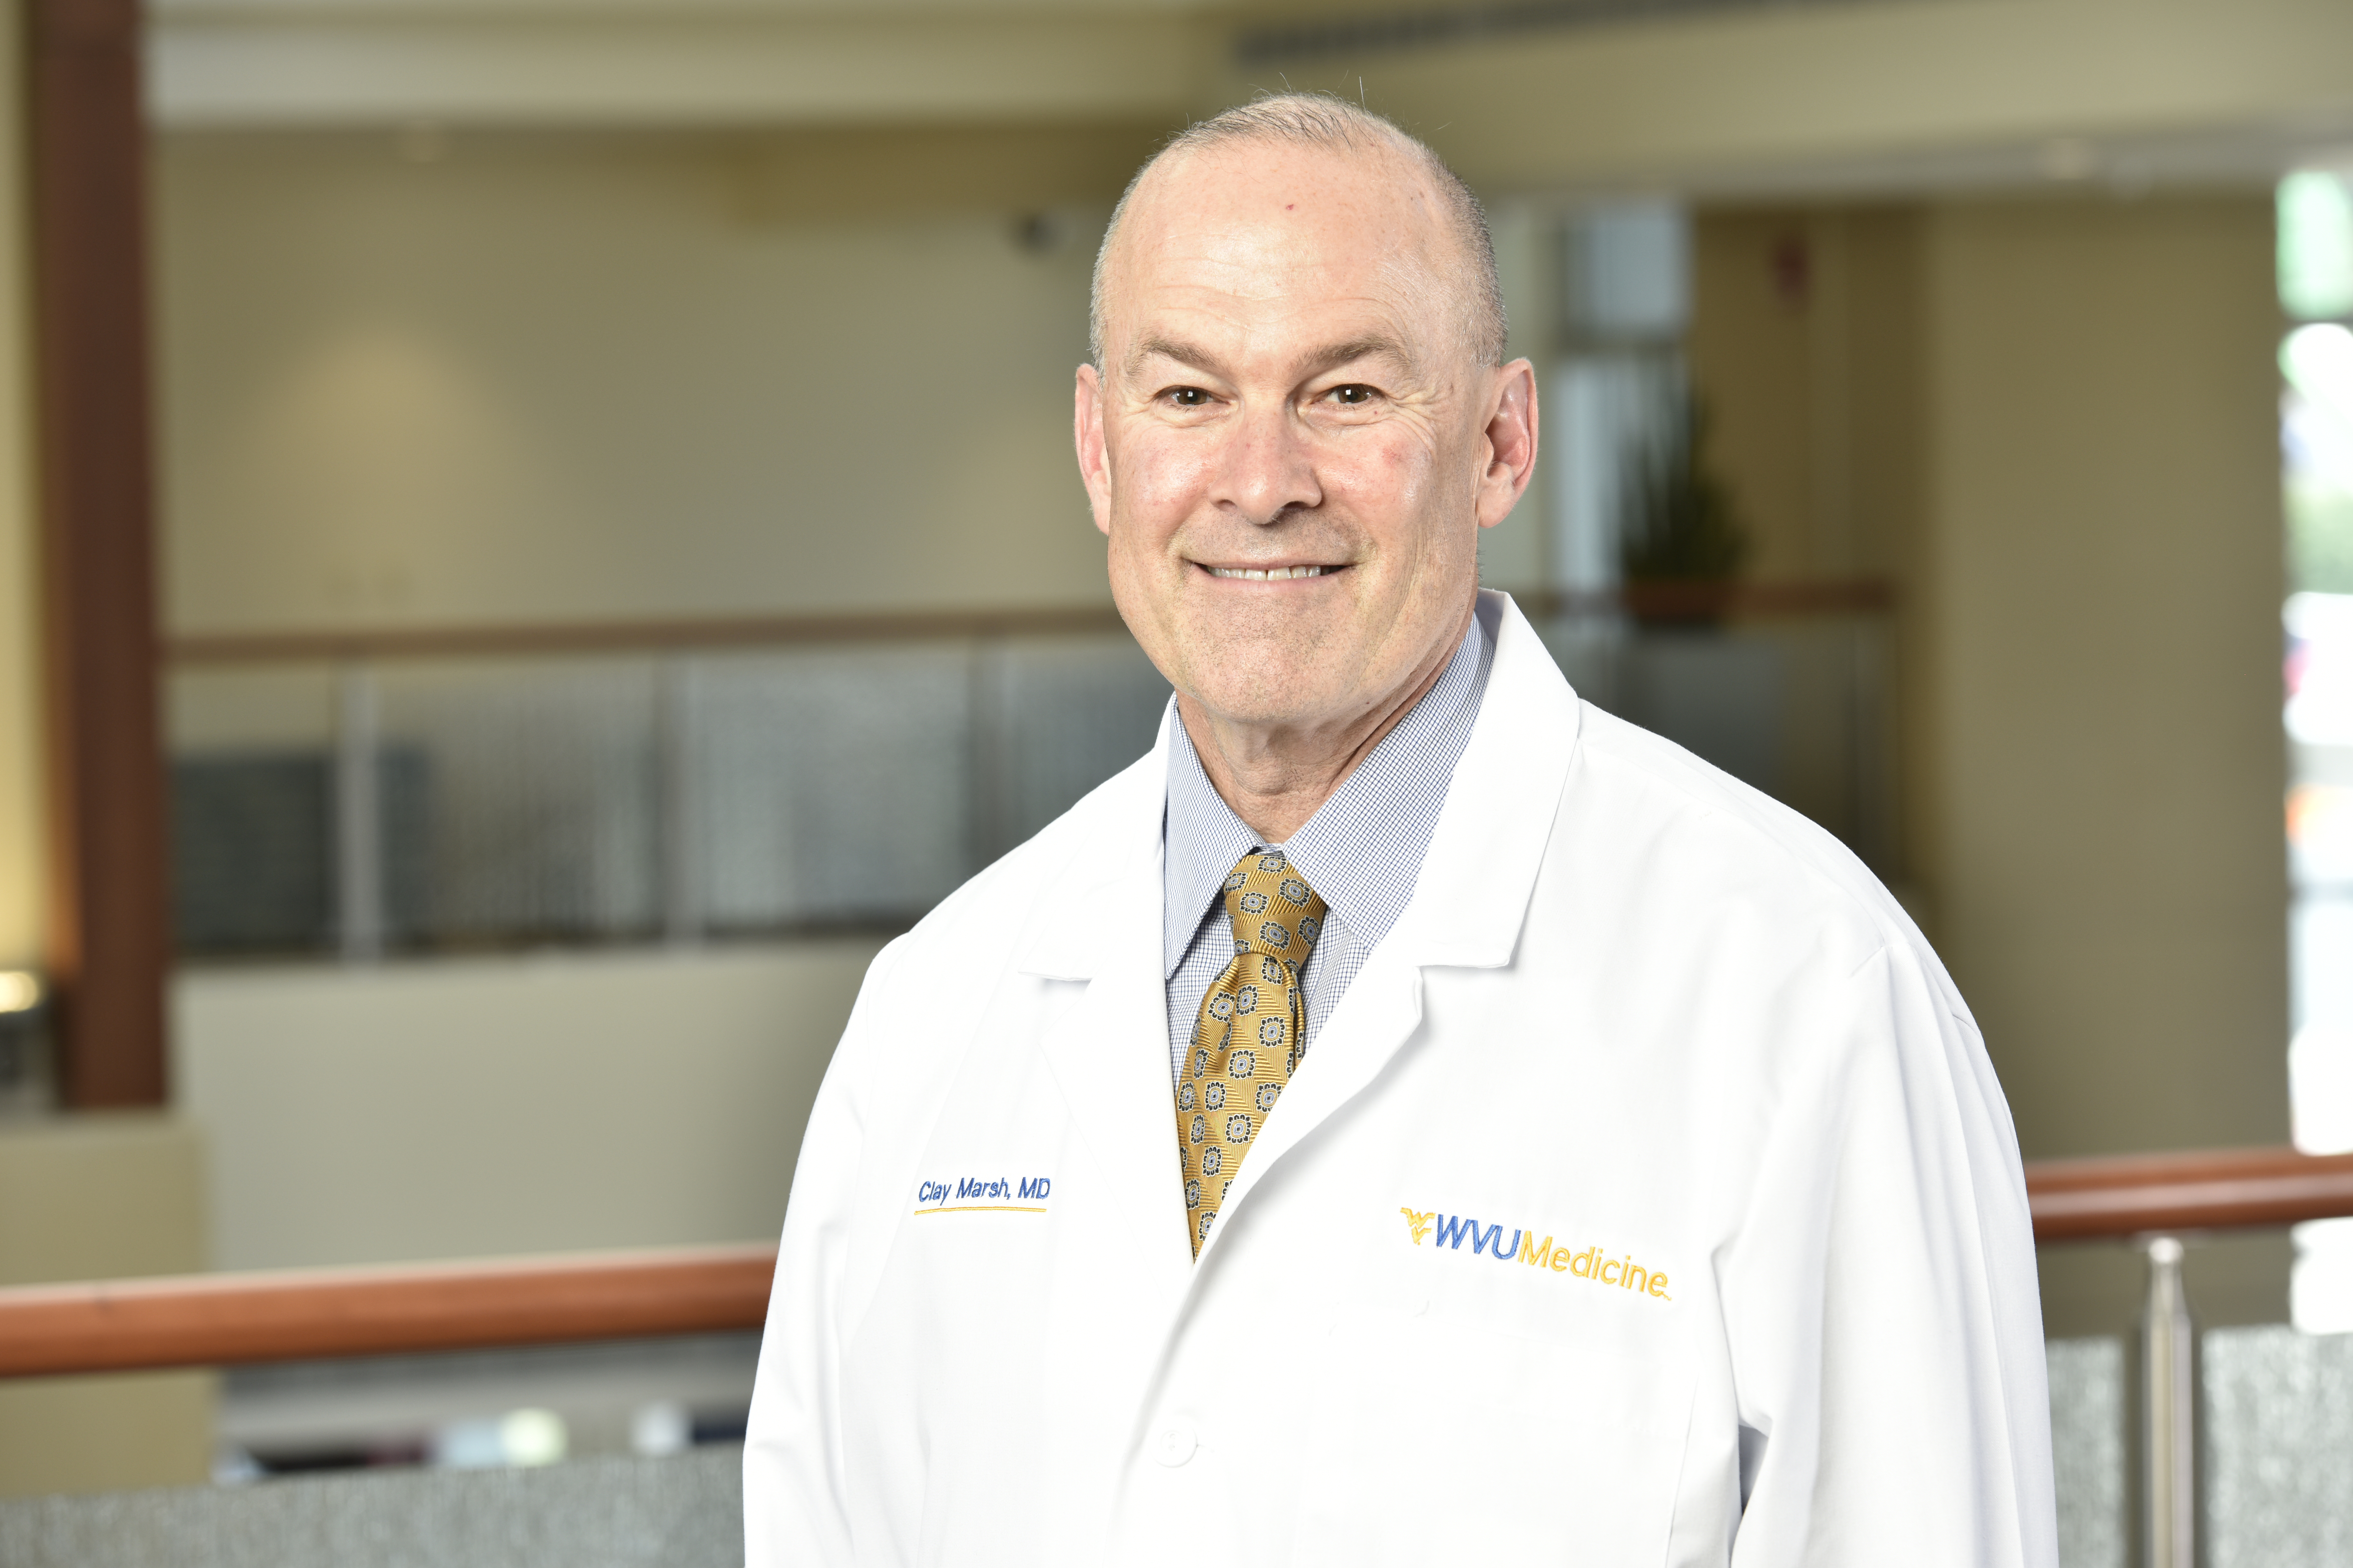 Photo of man with gray hair standing in WVU Medicine white lab coat